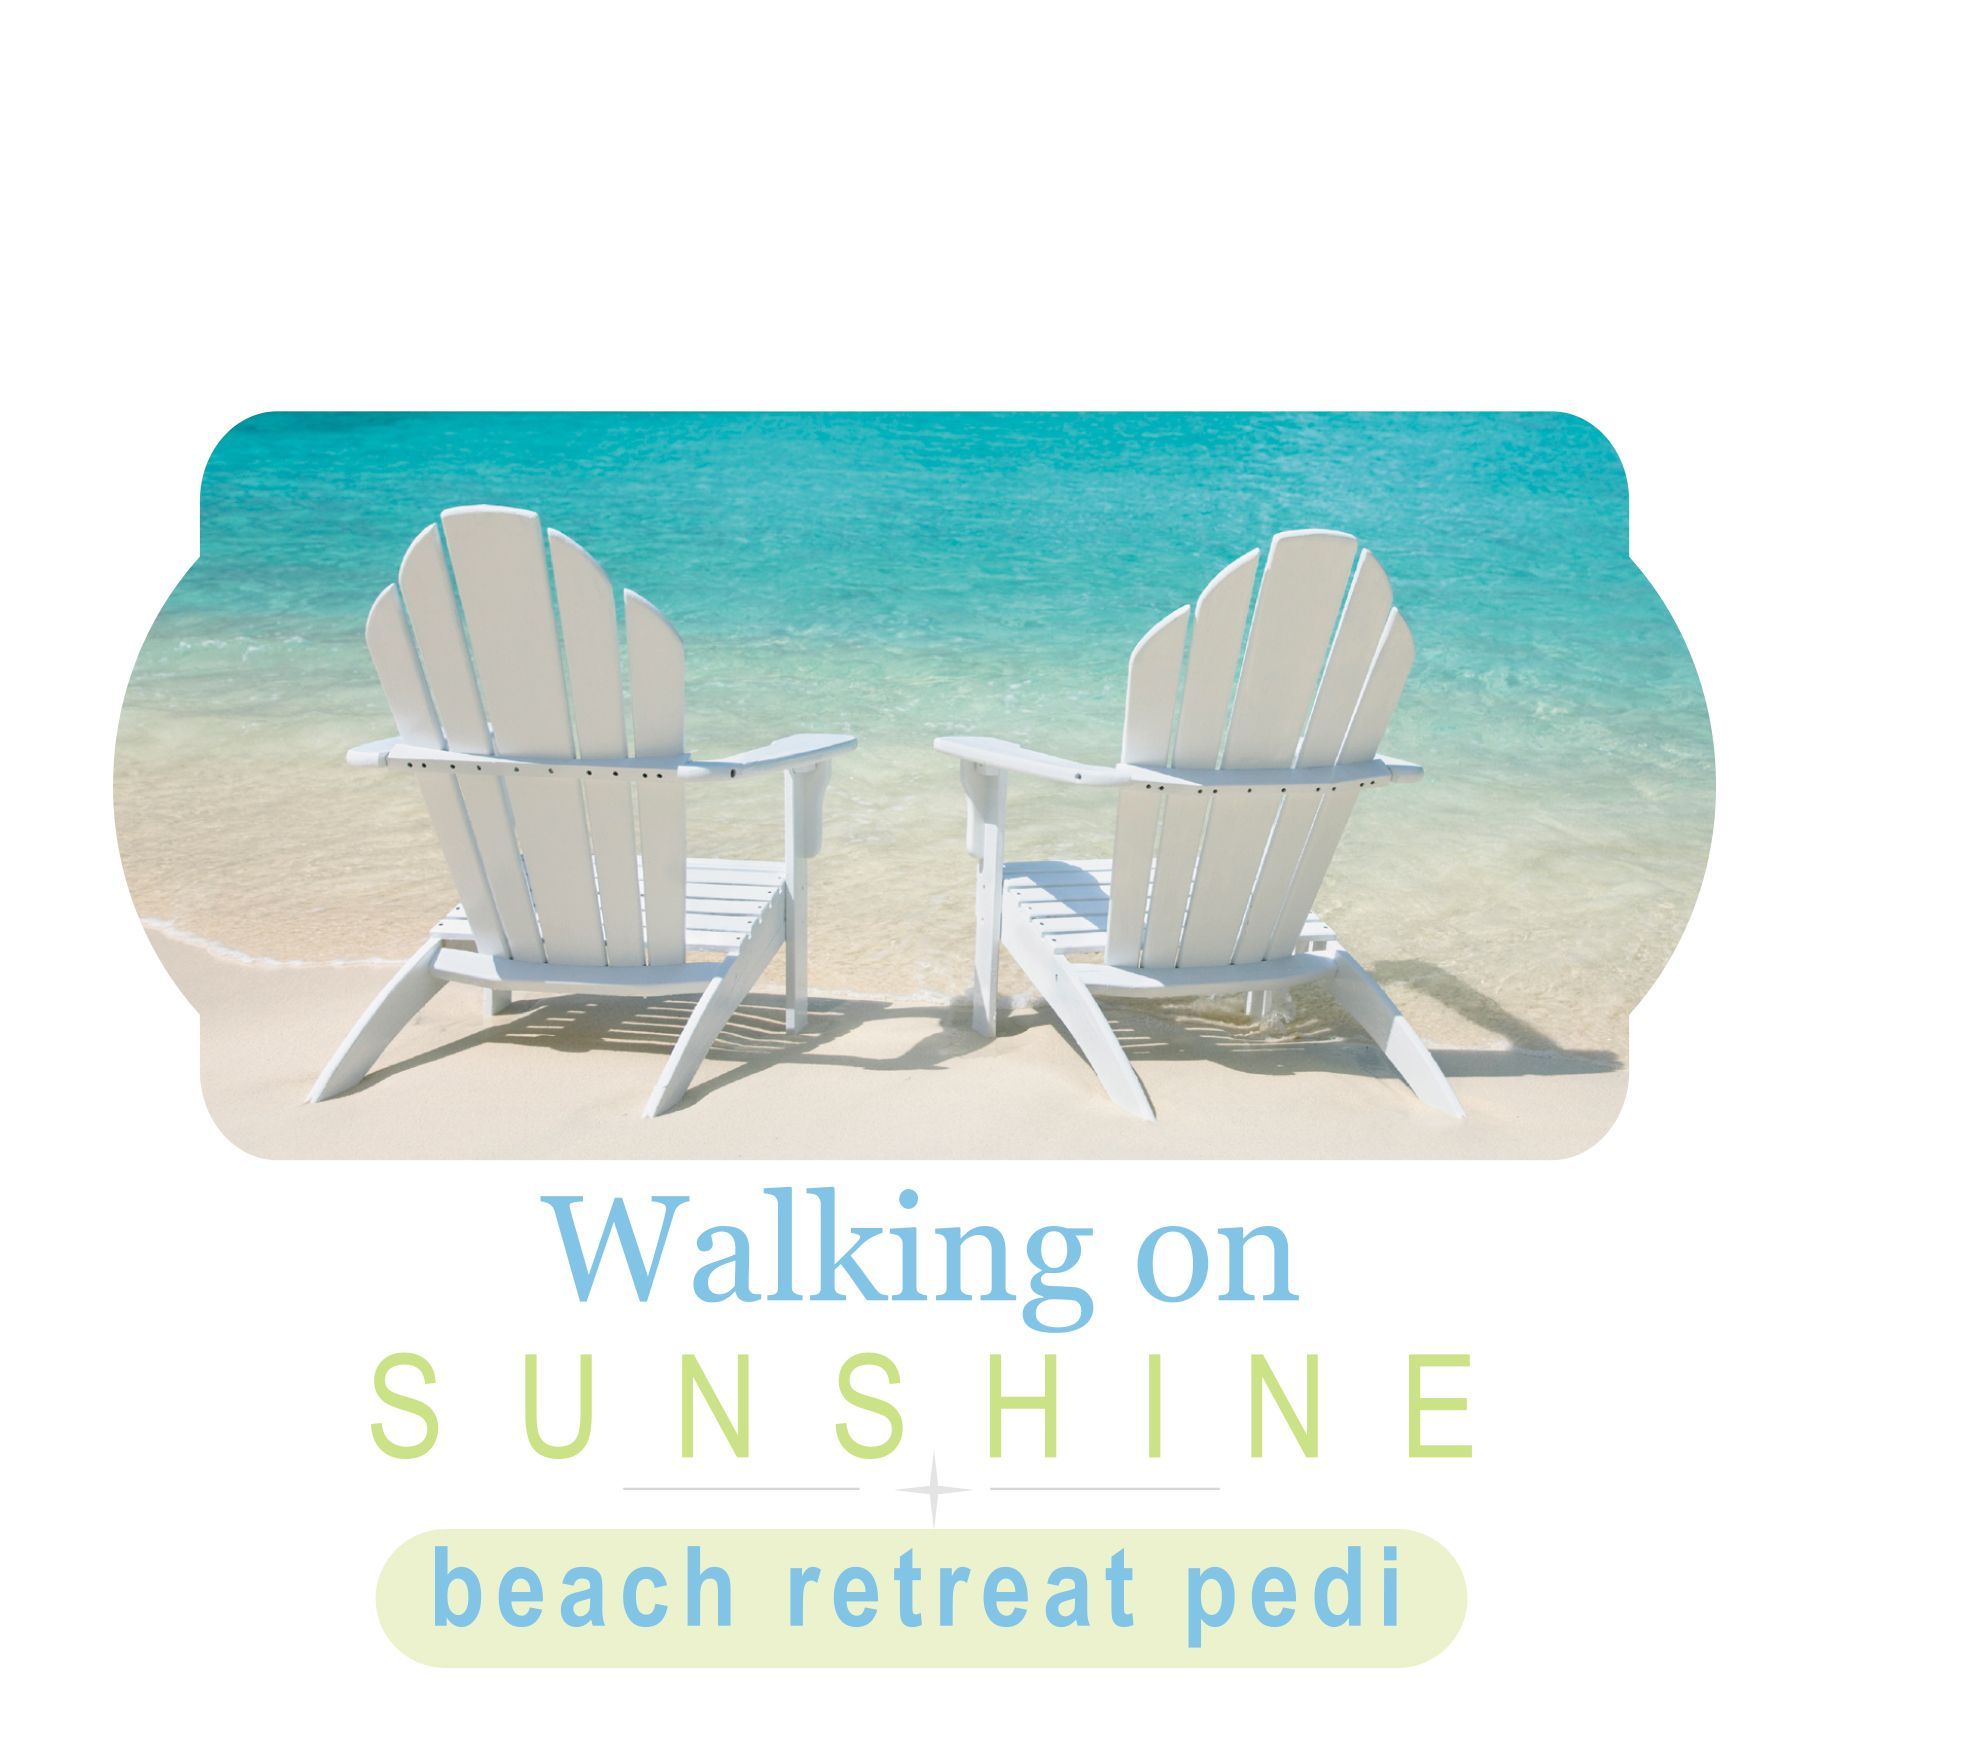 Walking on Sunshine Beach Retreat Pedi